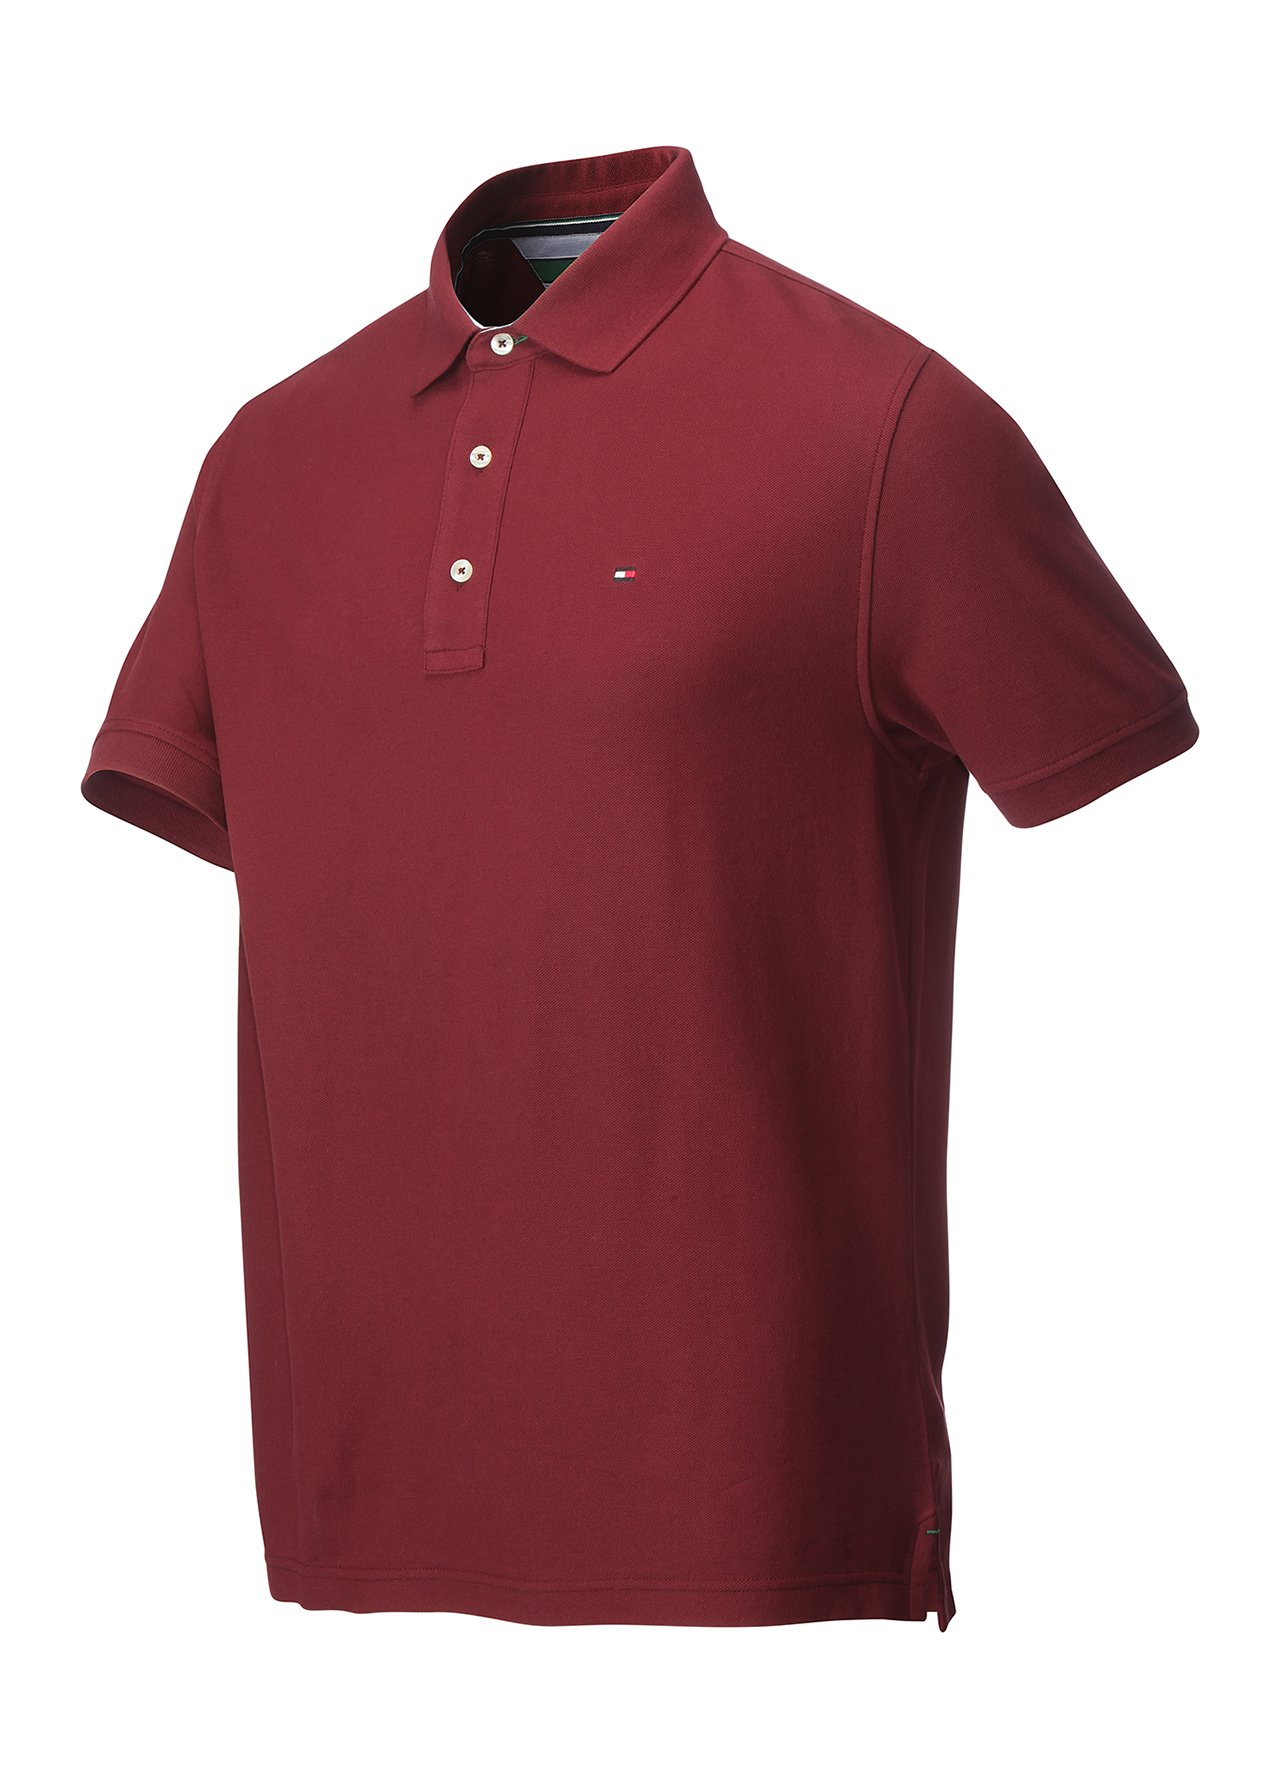 Tommy hilfiger pique golf polo shirt ferrell extra large